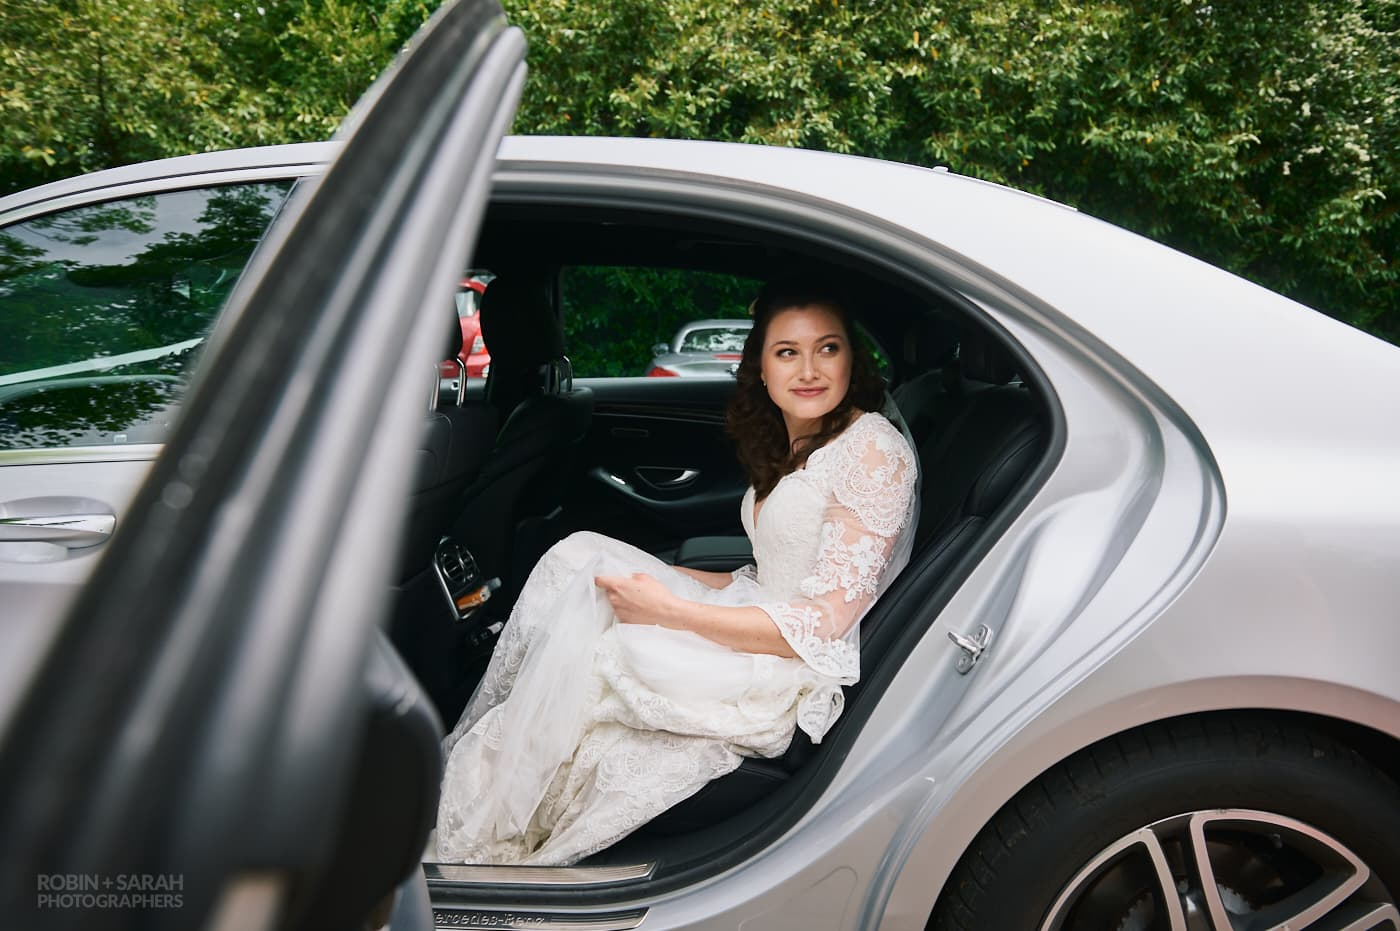 Bride looks out from wedding car